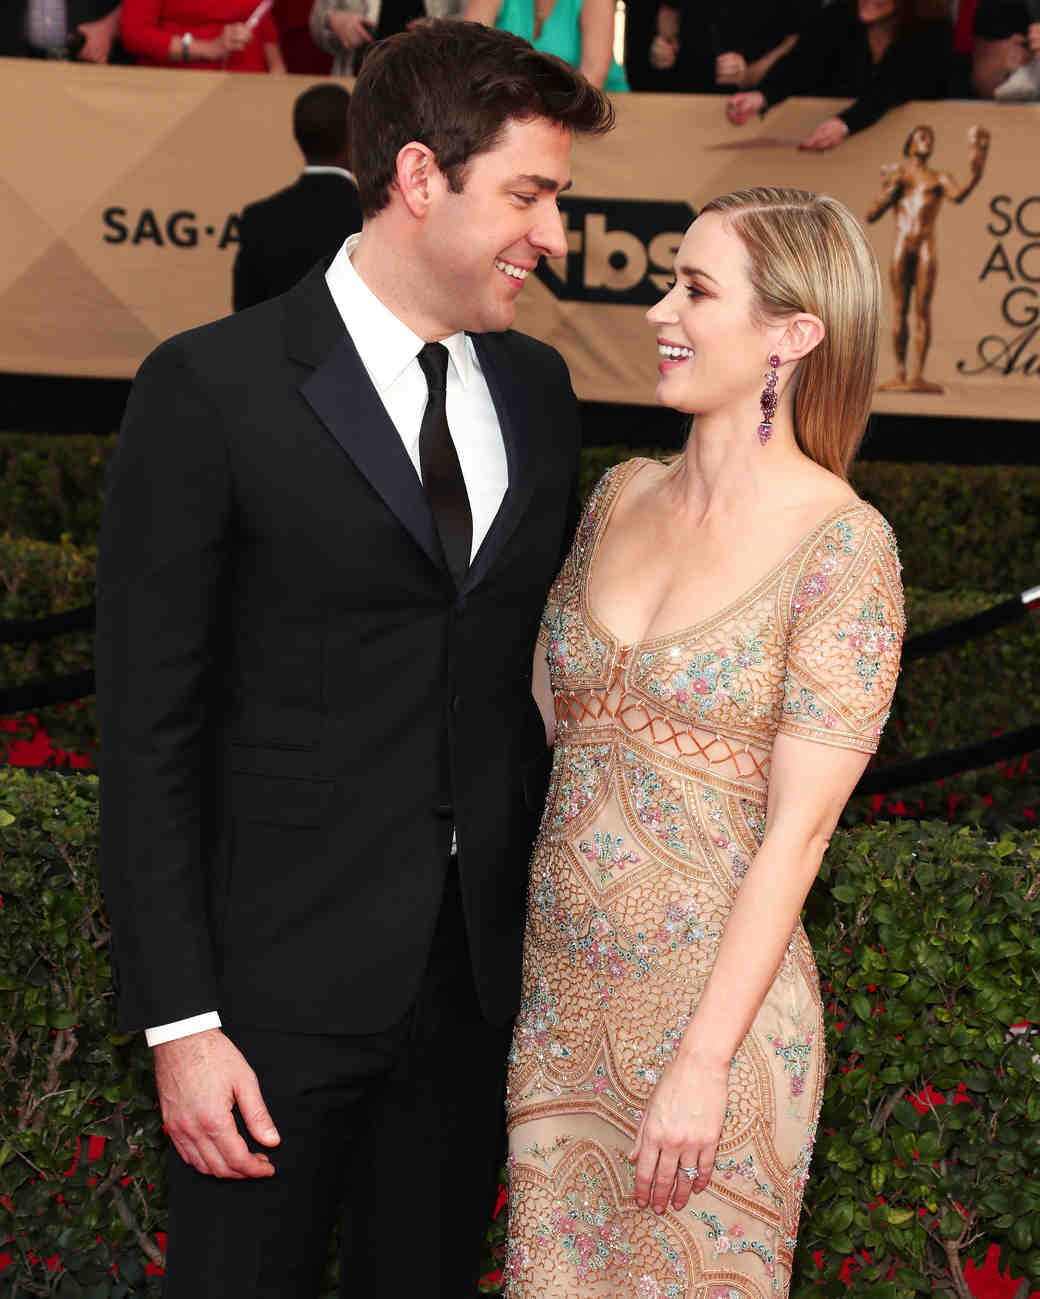 Emily Blunt and John Krasinski Sag Awards 2017